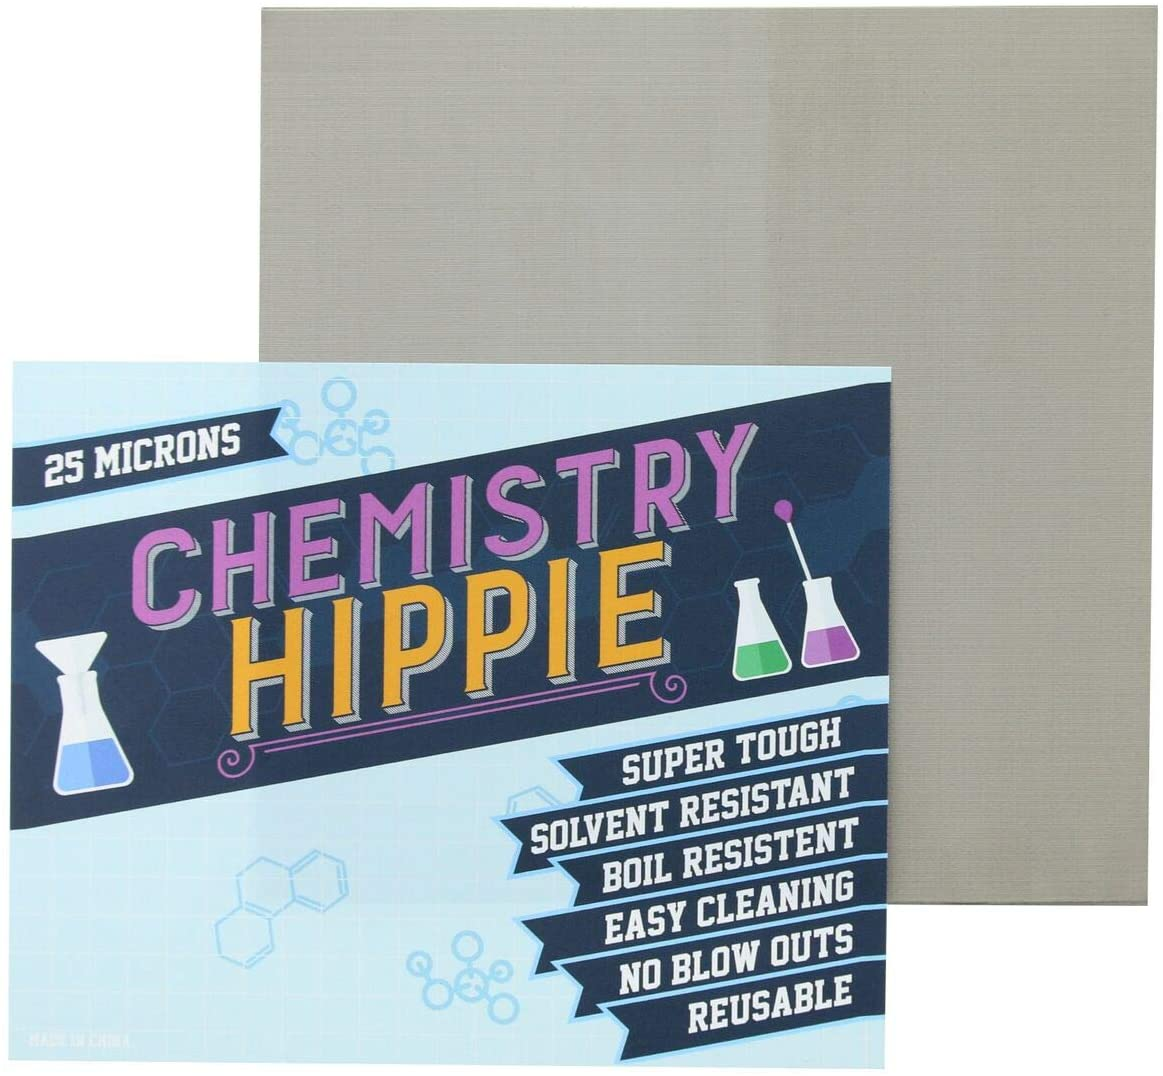 Chemistry Hippie | 6-pack Essential Oil Concentrate Filter | Ultra Strong 5x5 Inch Sheets | Micron Screens (25 micron stainless steel)